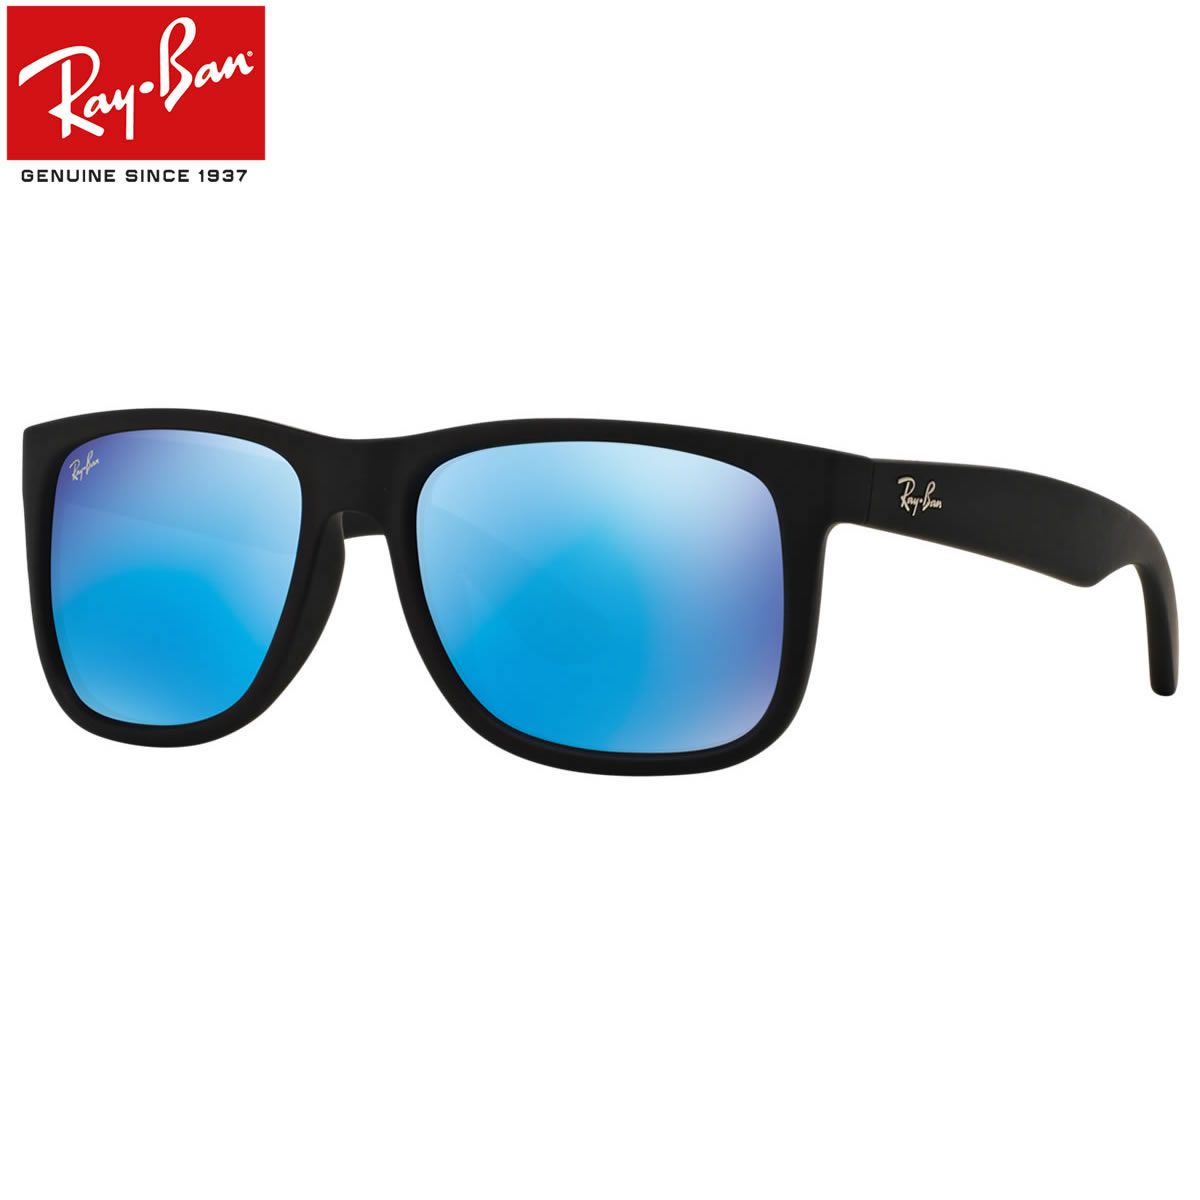 5825677dc39a Ray-Ban Sunglasses RB4165F 622 55 54size JUSTIN FULL FIT (for Asian)